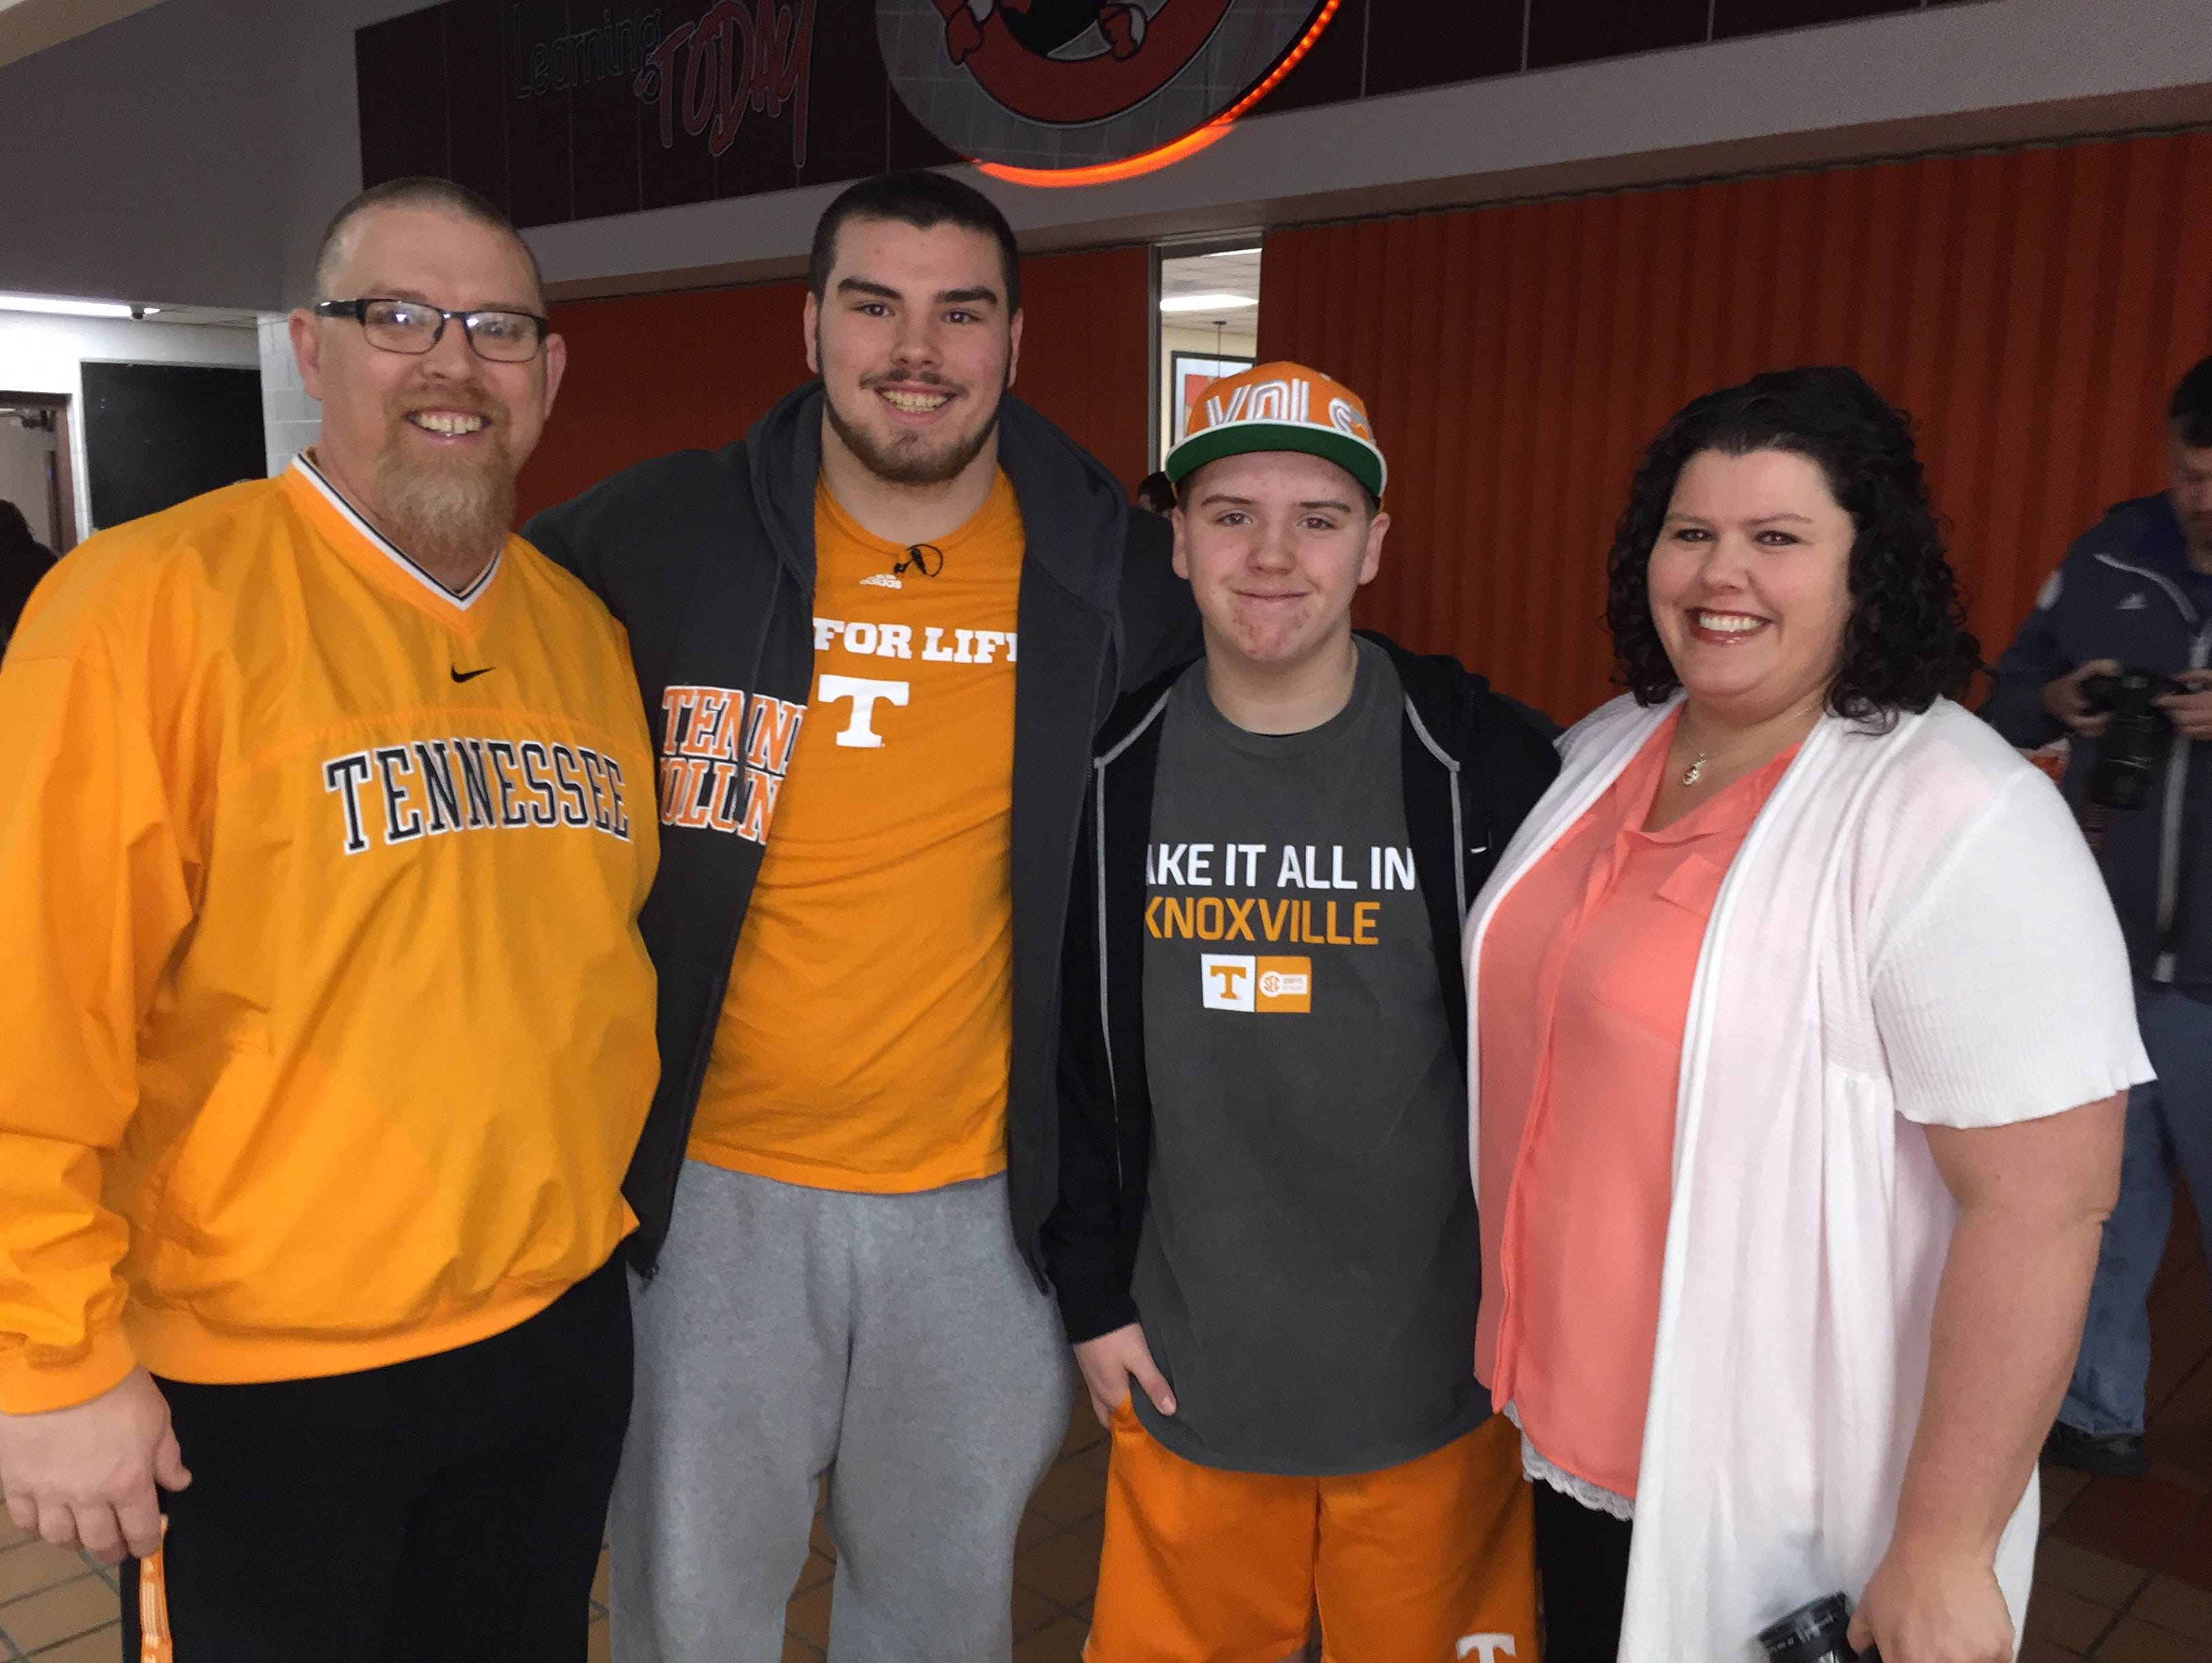 Coalfield's Zach Stewart signed with the Vols early on National Signing Day